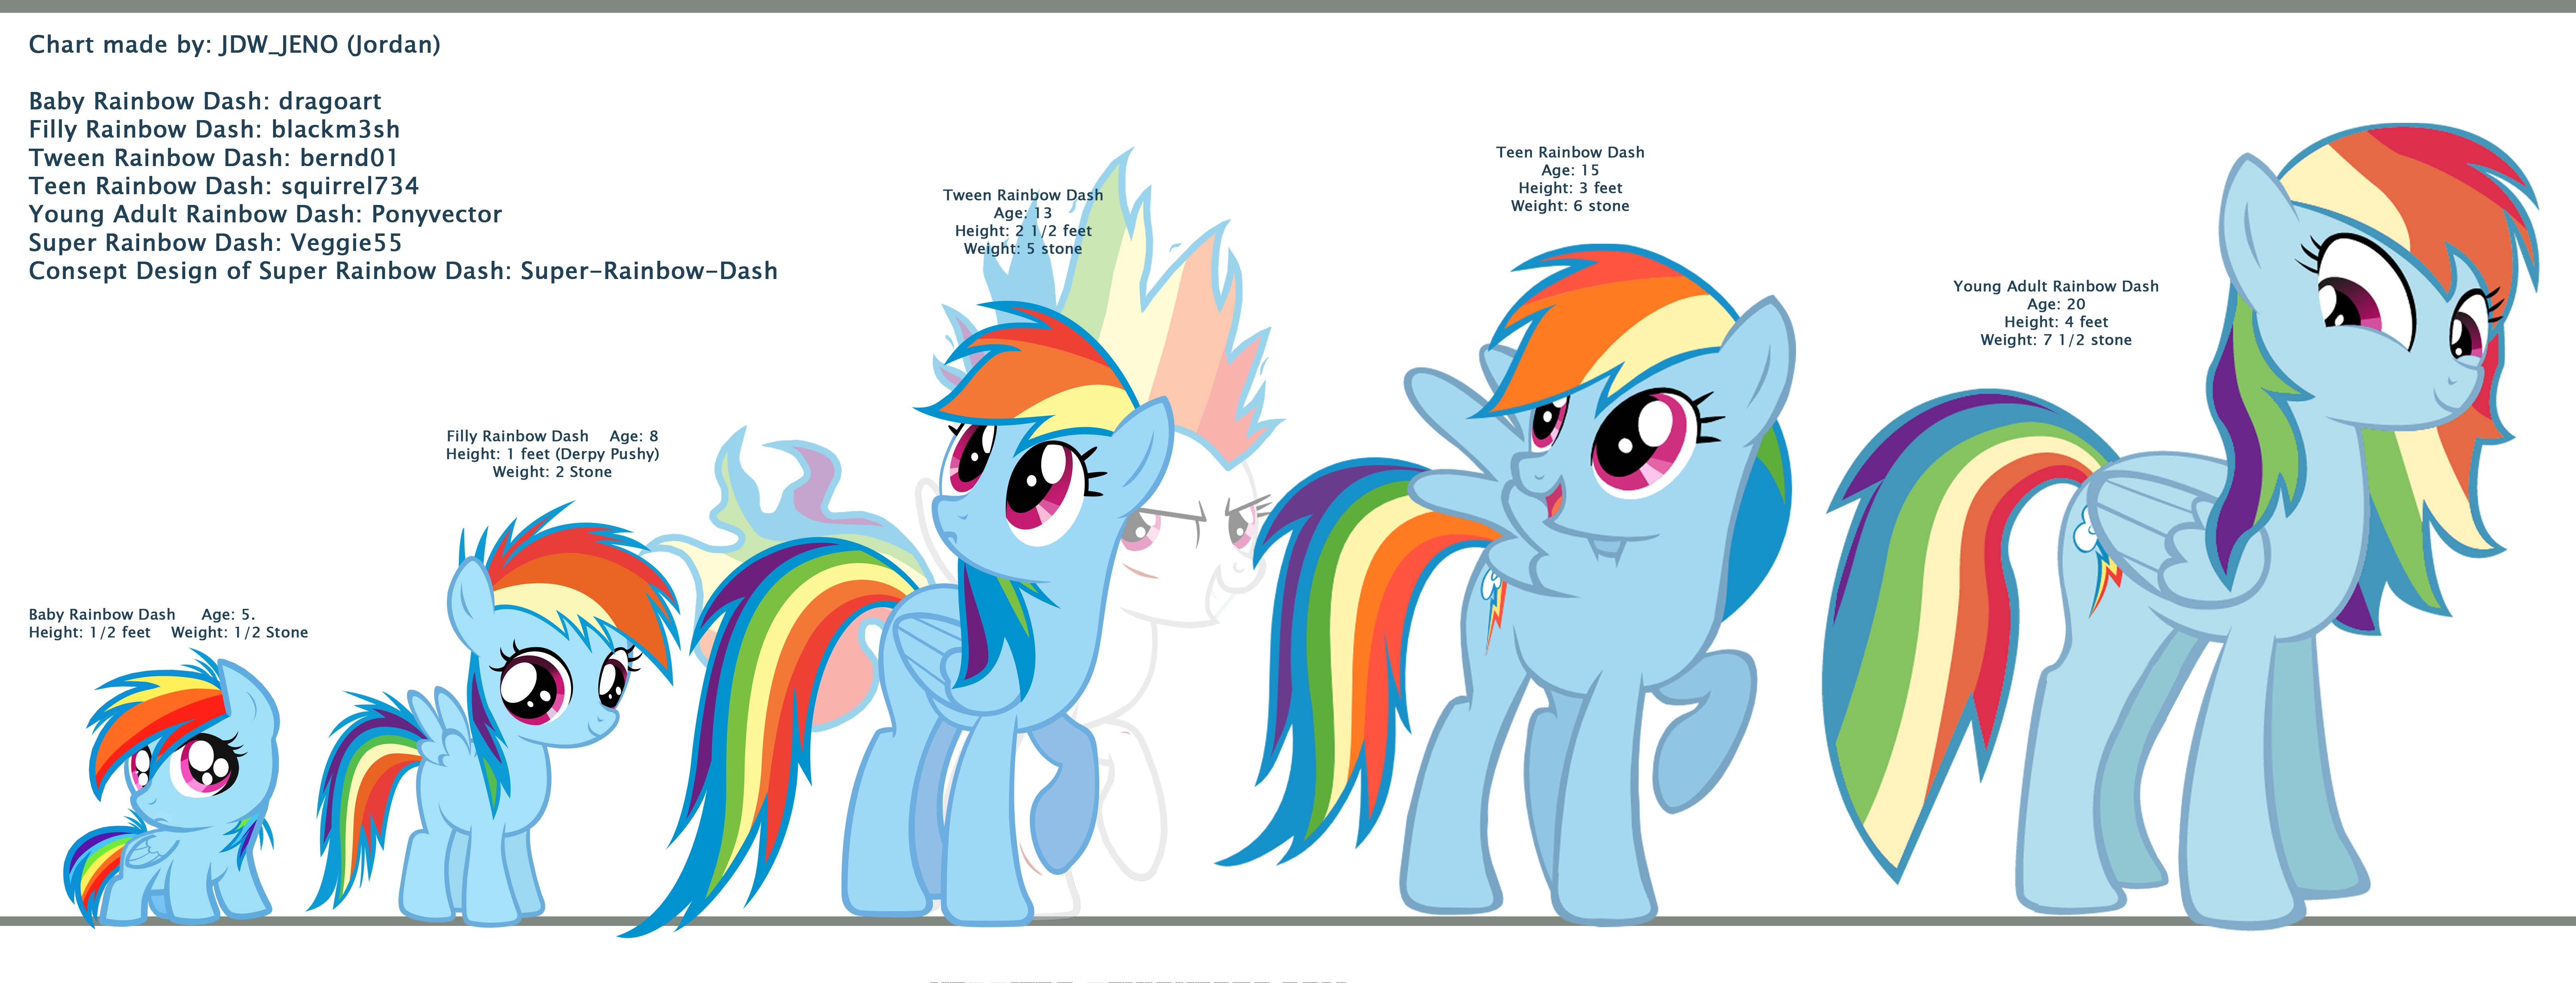 Dashie Growth My Little Pony Friendship Is Magic Know